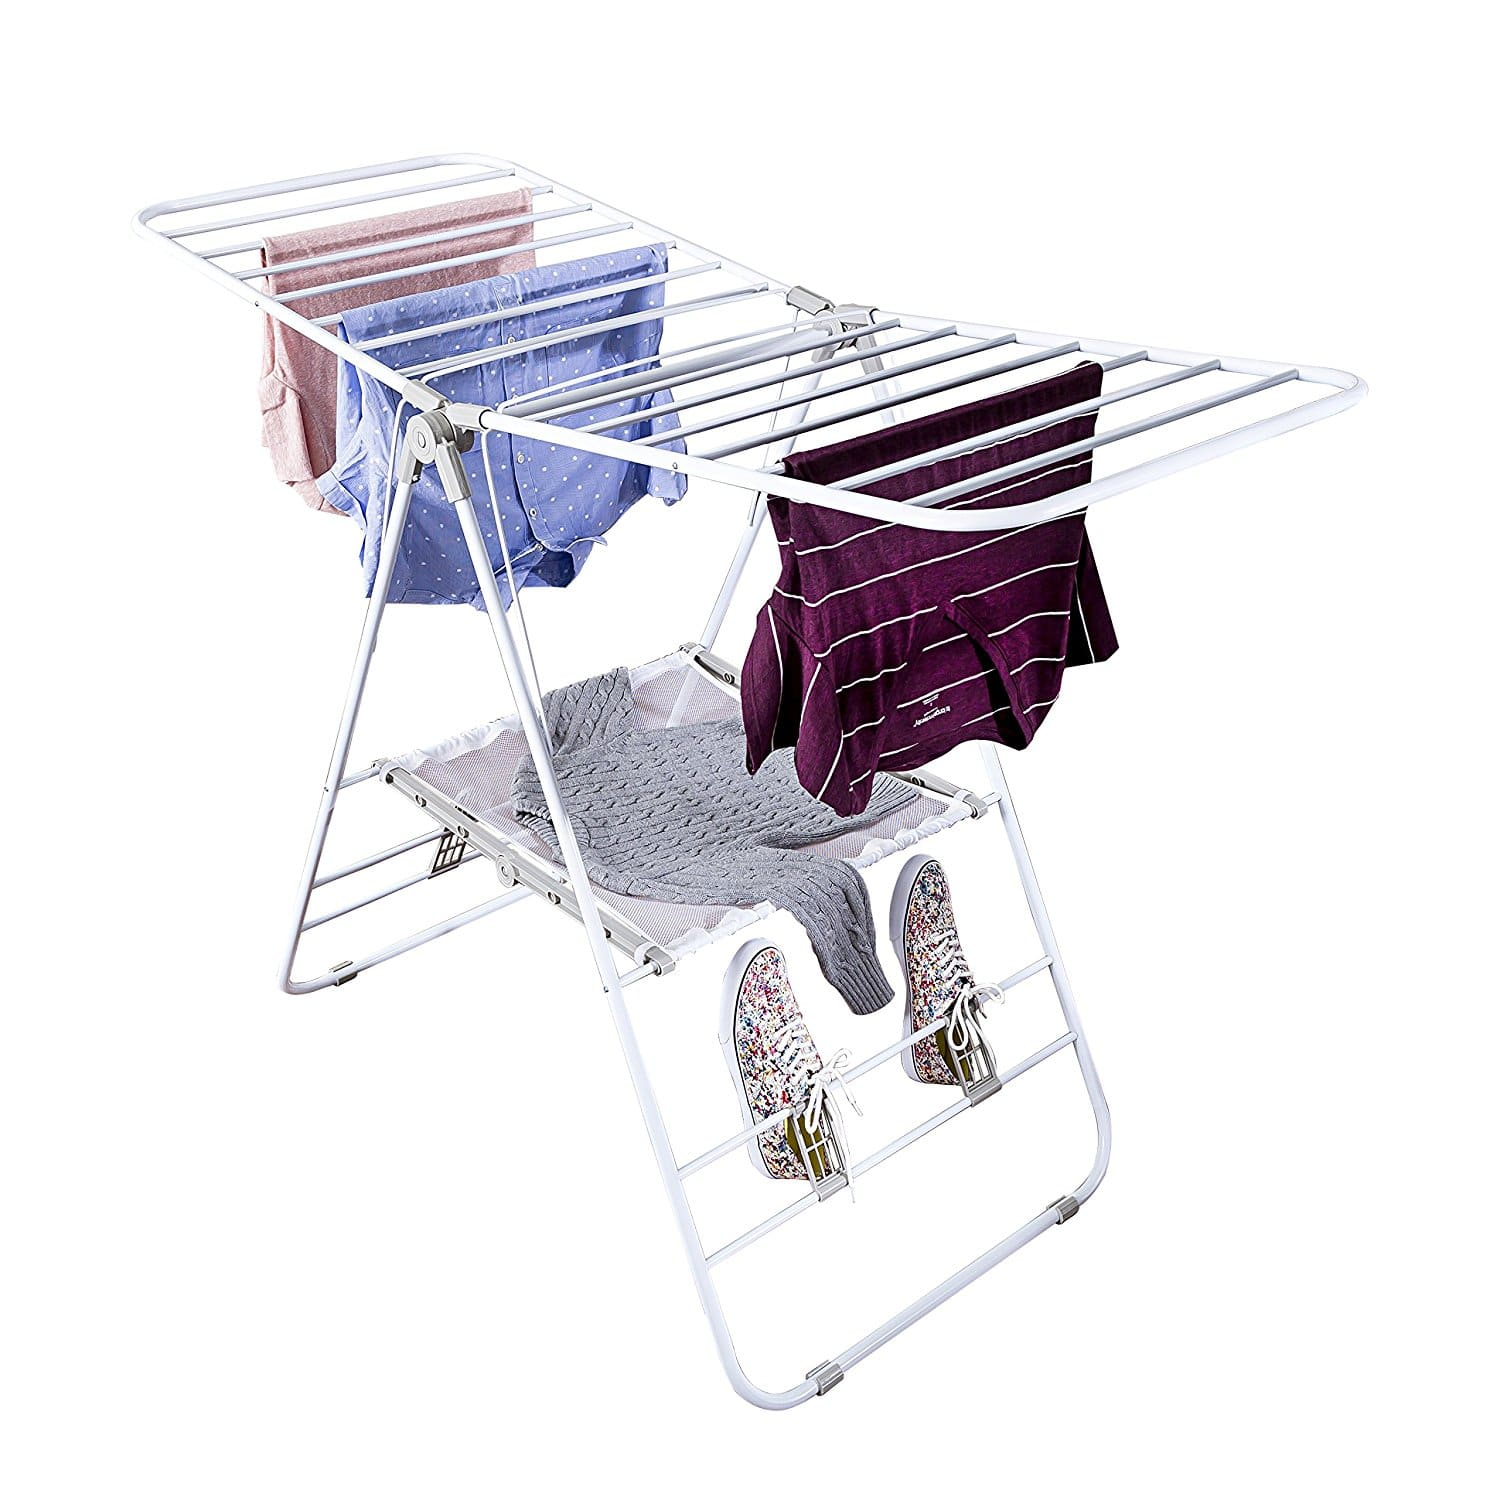 Highly Rated Honey-Can-Do Heavy Duty Drying Rack $23